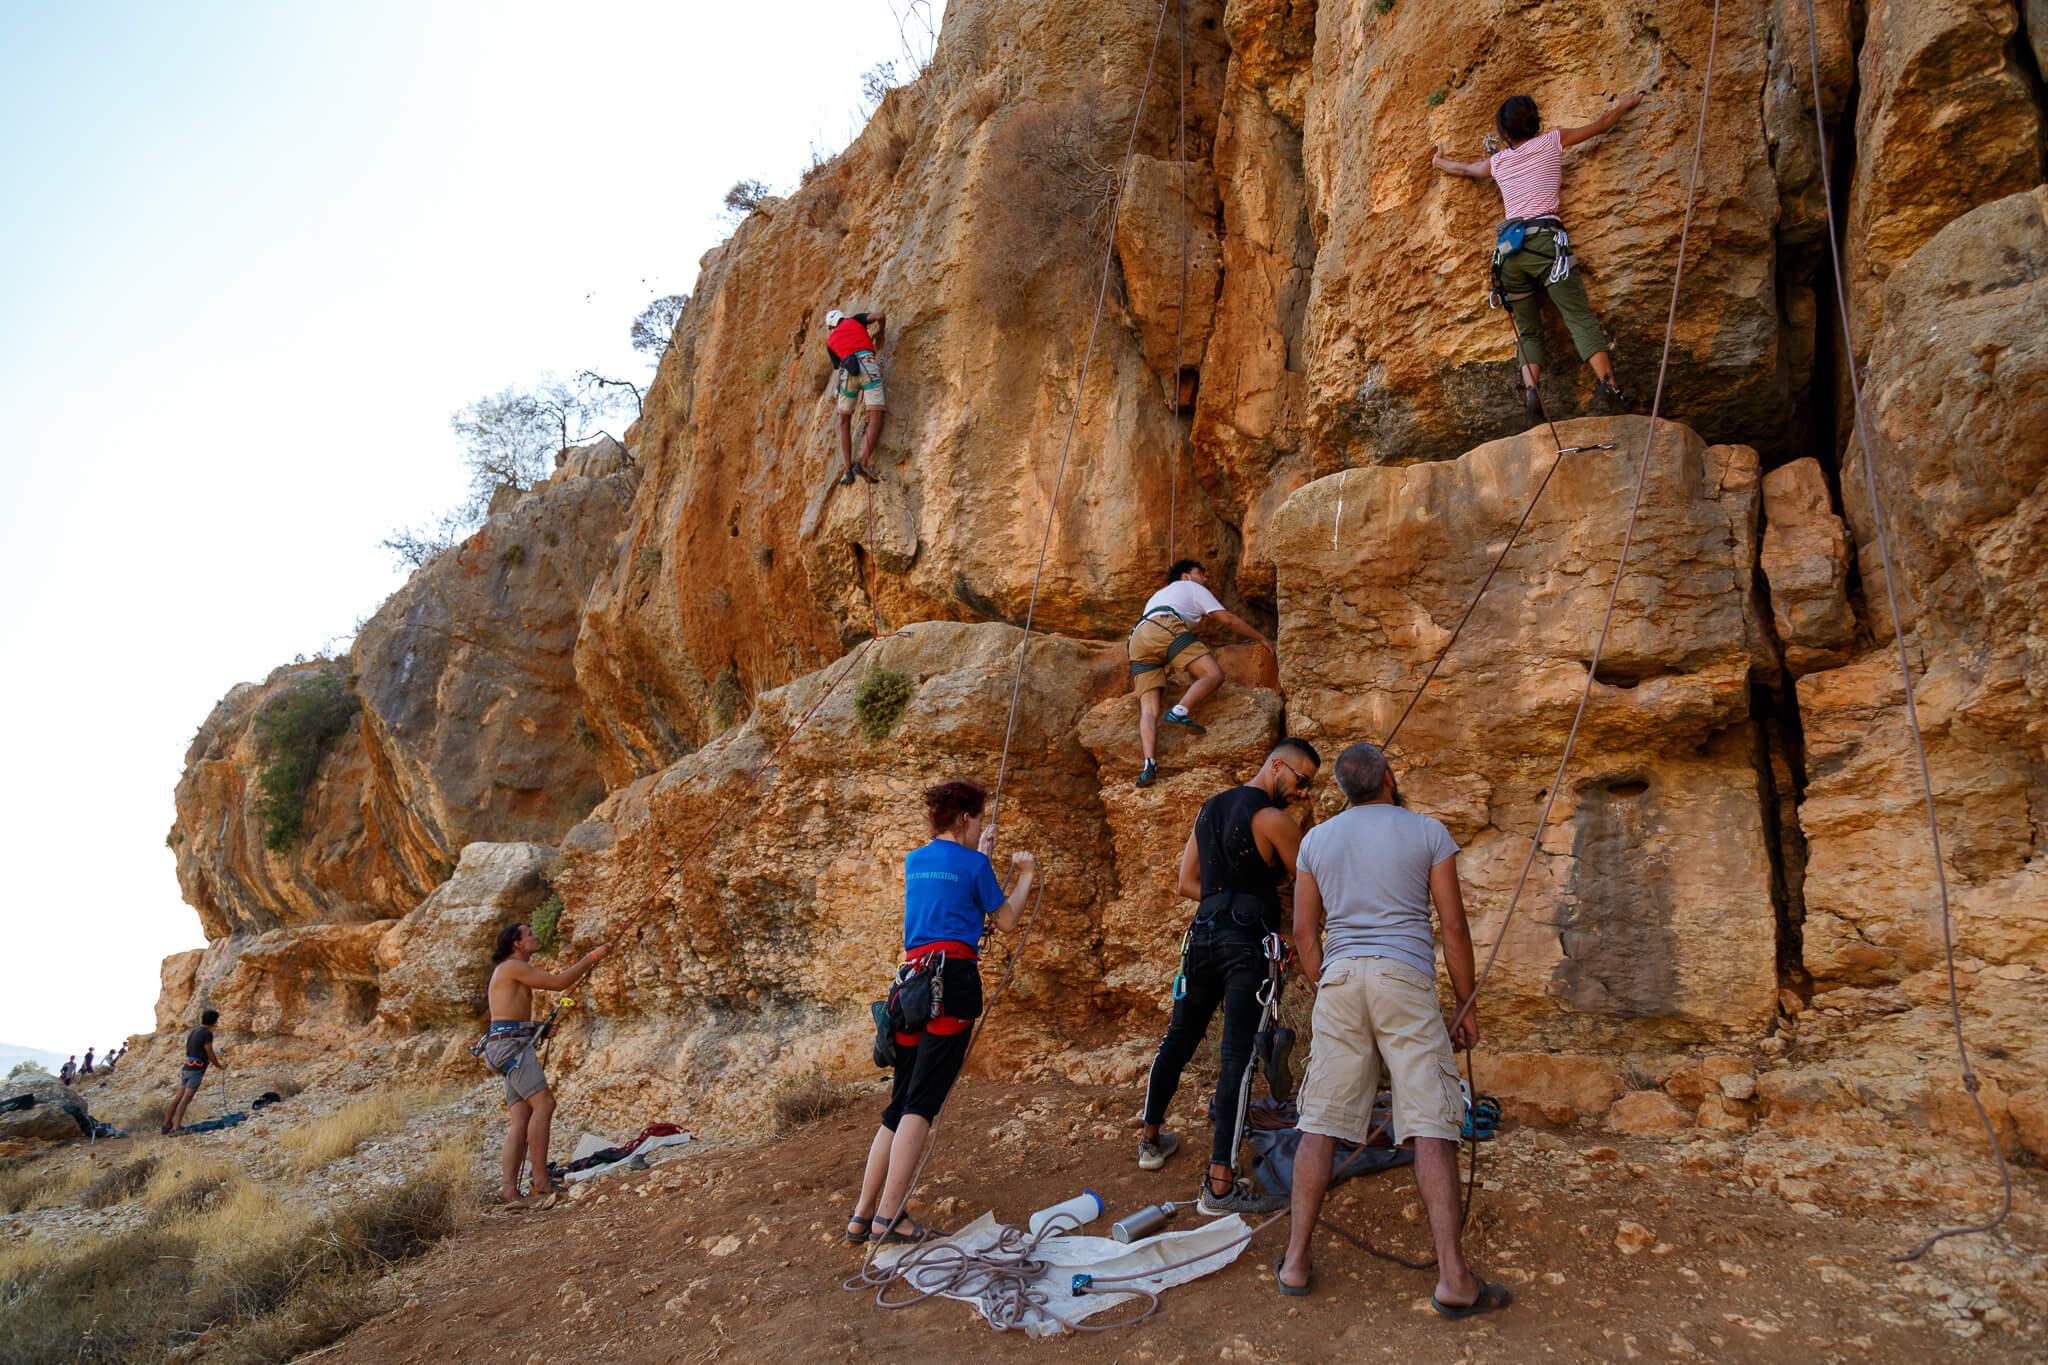 Rock climbers with Wadi Climbing in the scale a limestone bluff in the West Bank city of Ein Qiniya. Routes range from beginner climbs to advanced. (Photo: Miriam Deprez)